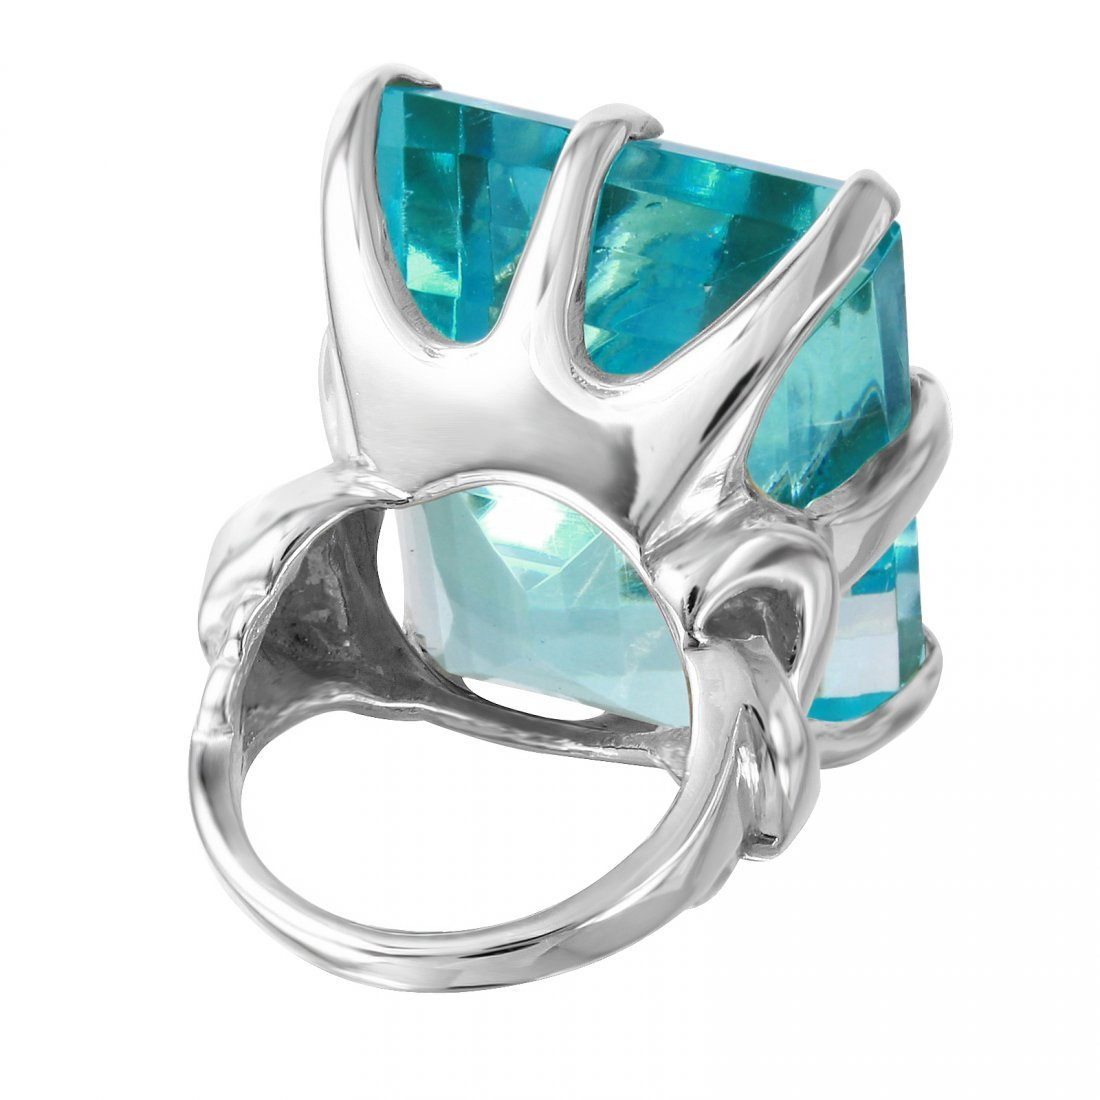 Aquamarine Sterling Silver Cocktail Ring, Size 6 - 3